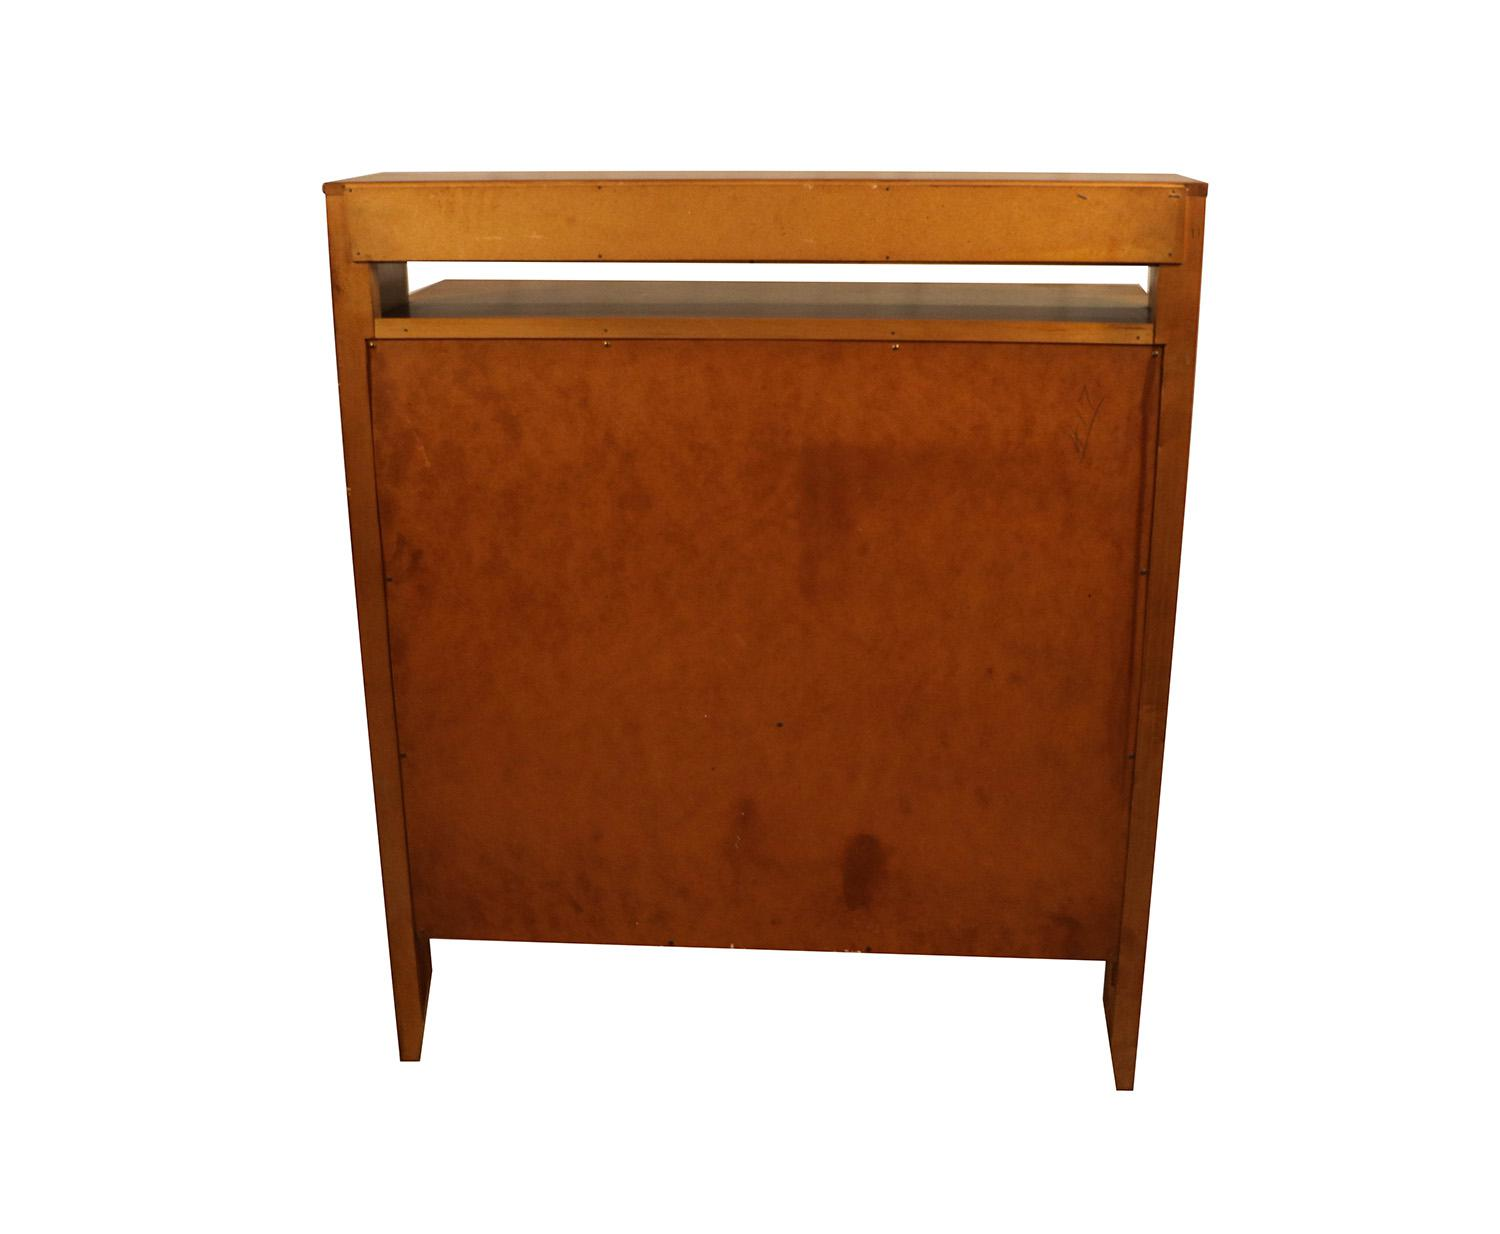 West Michigan Furniture Company Mid Century Modern Bar Cabinet Highboy  Dresser   Image 8 Of 11